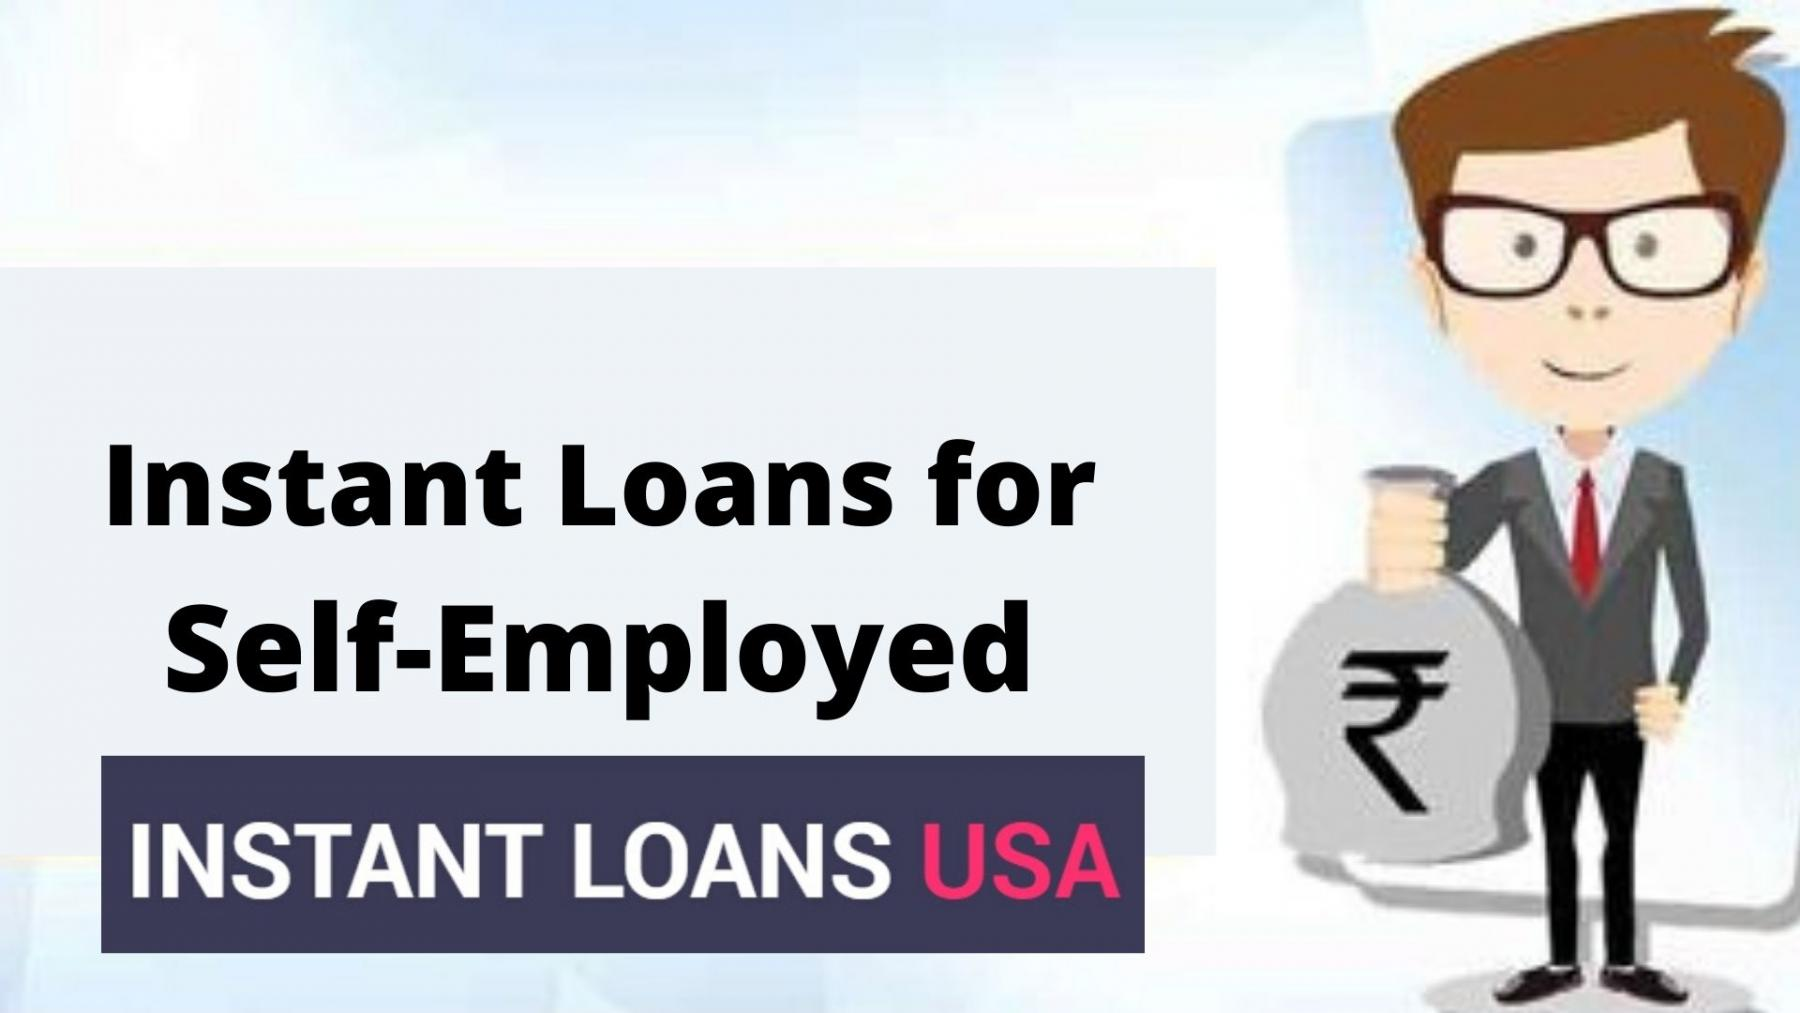 Instant Personal Loans for Self-Employed